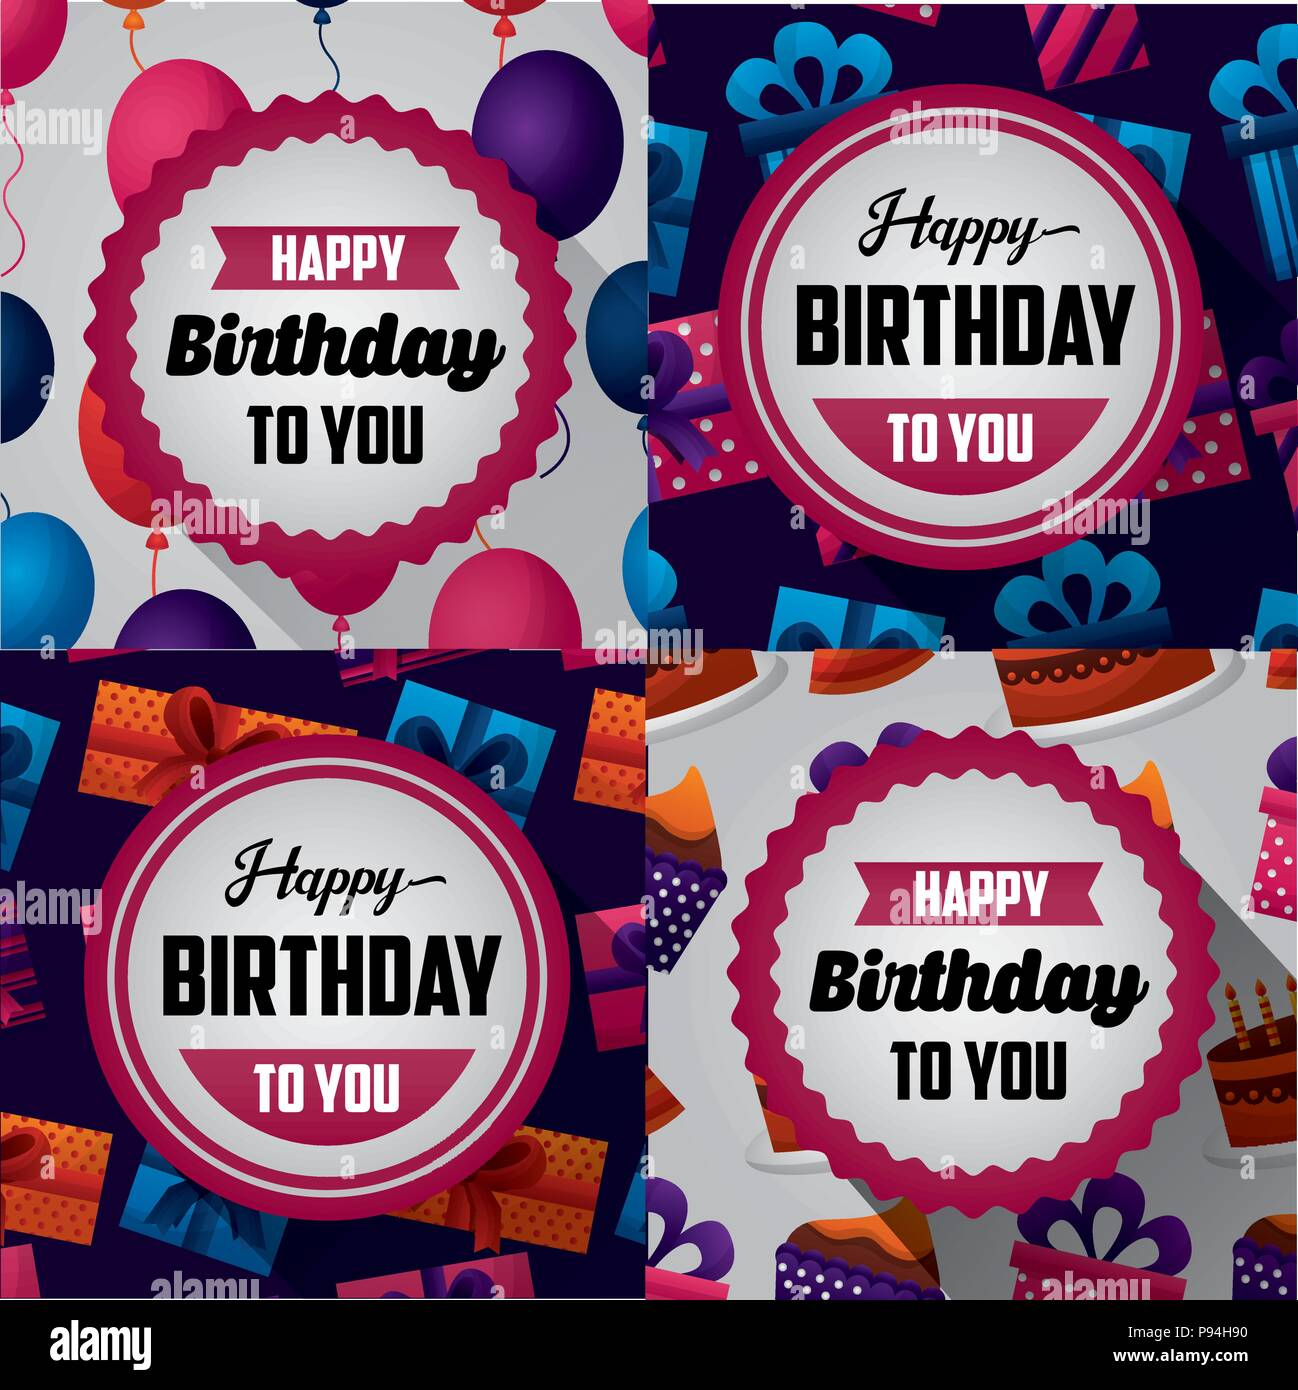 Happy Birthday Card Collorful Banner Stickers Sign Birth To You Day Balloons Gifts Cakes Vector Illustration